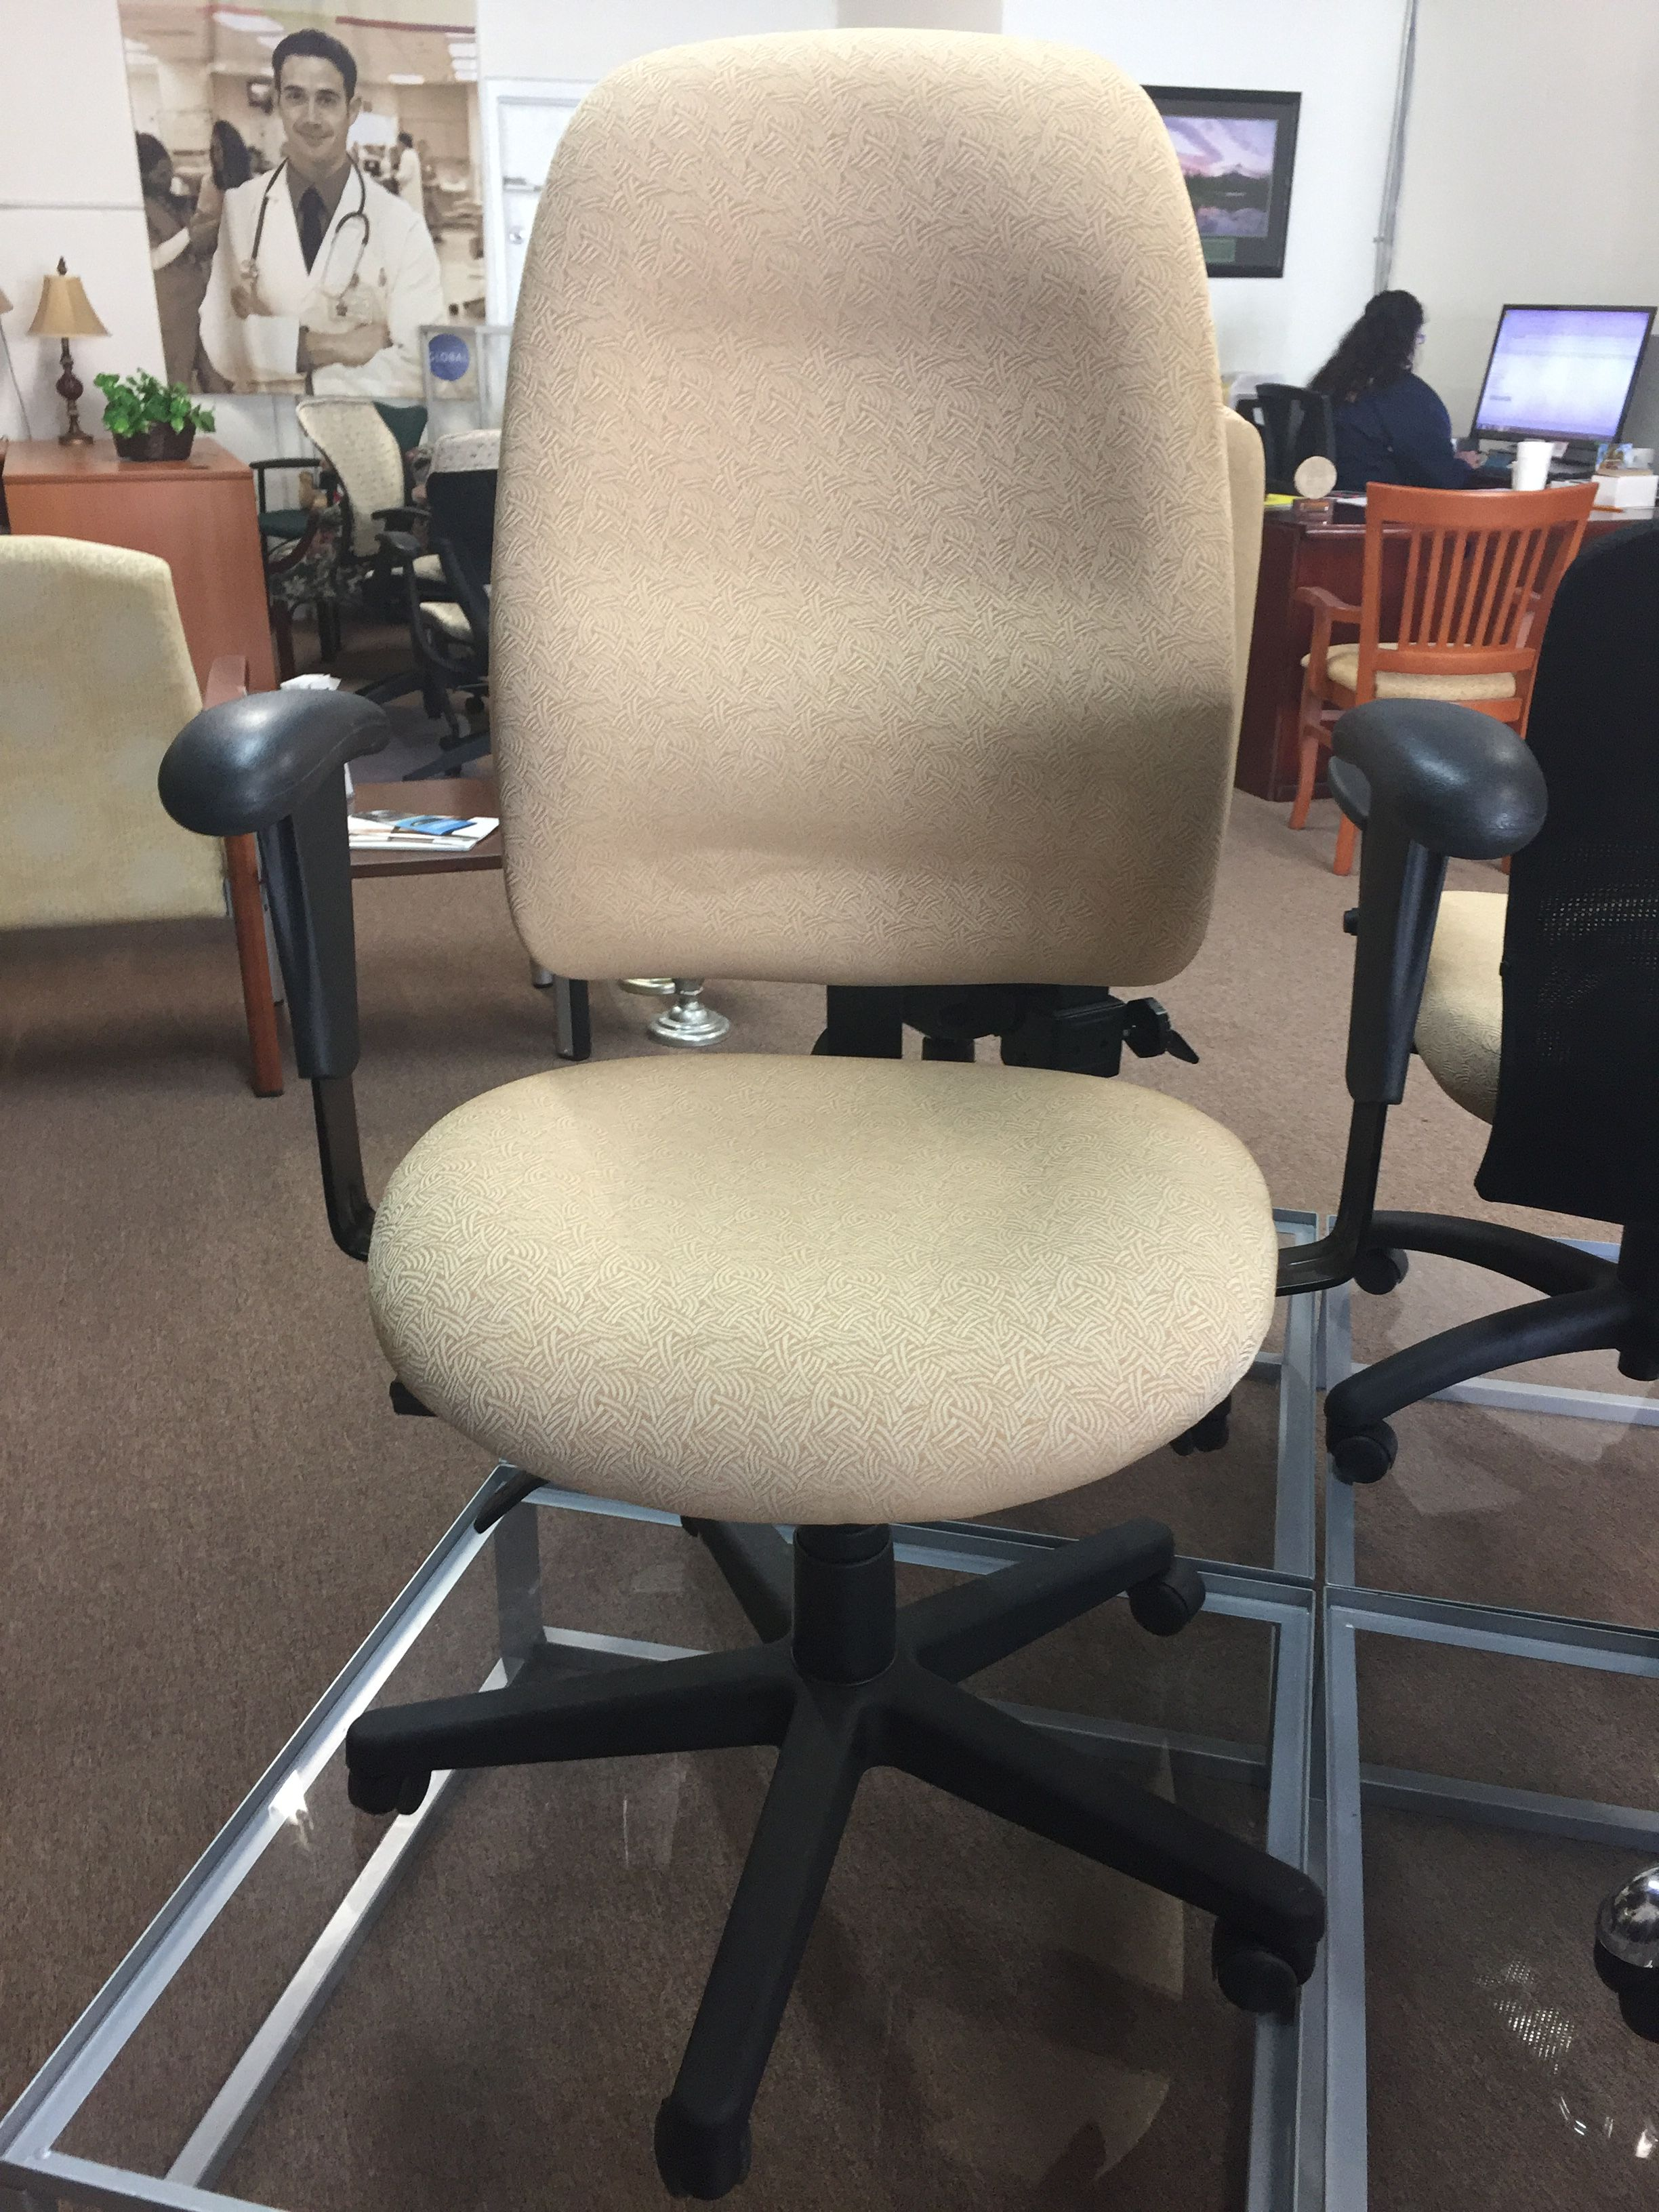 Showroom Chairs One Of A Kind Up To 80 Off List Price